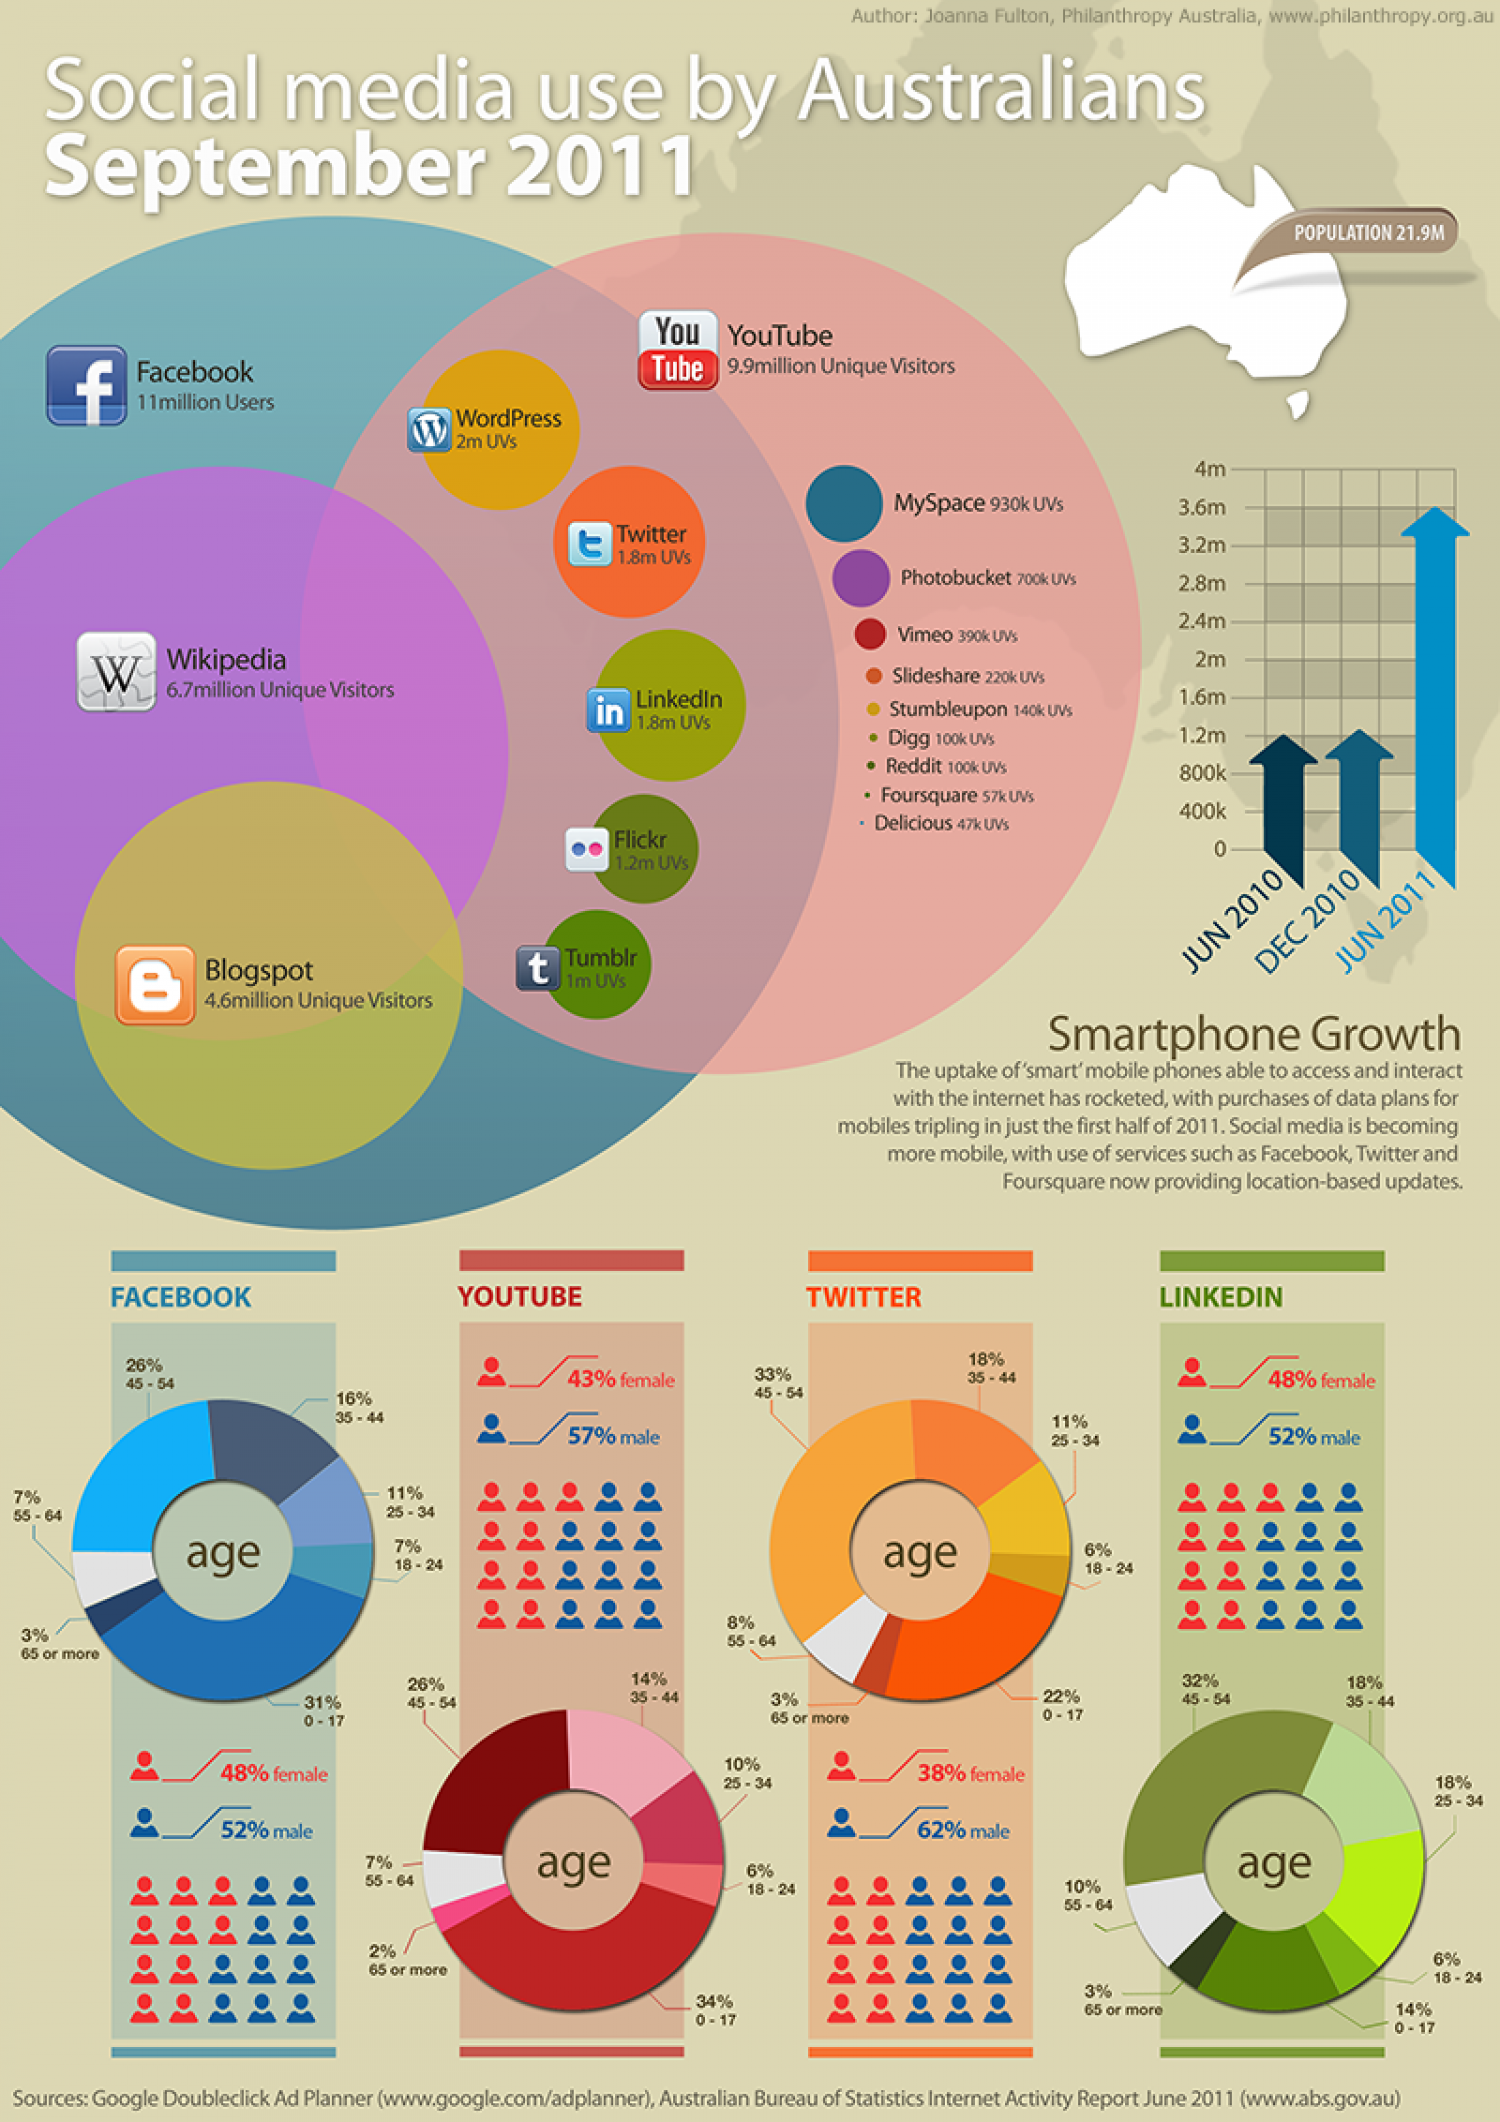 Social Media Use by Australians - September 2011 Infographic